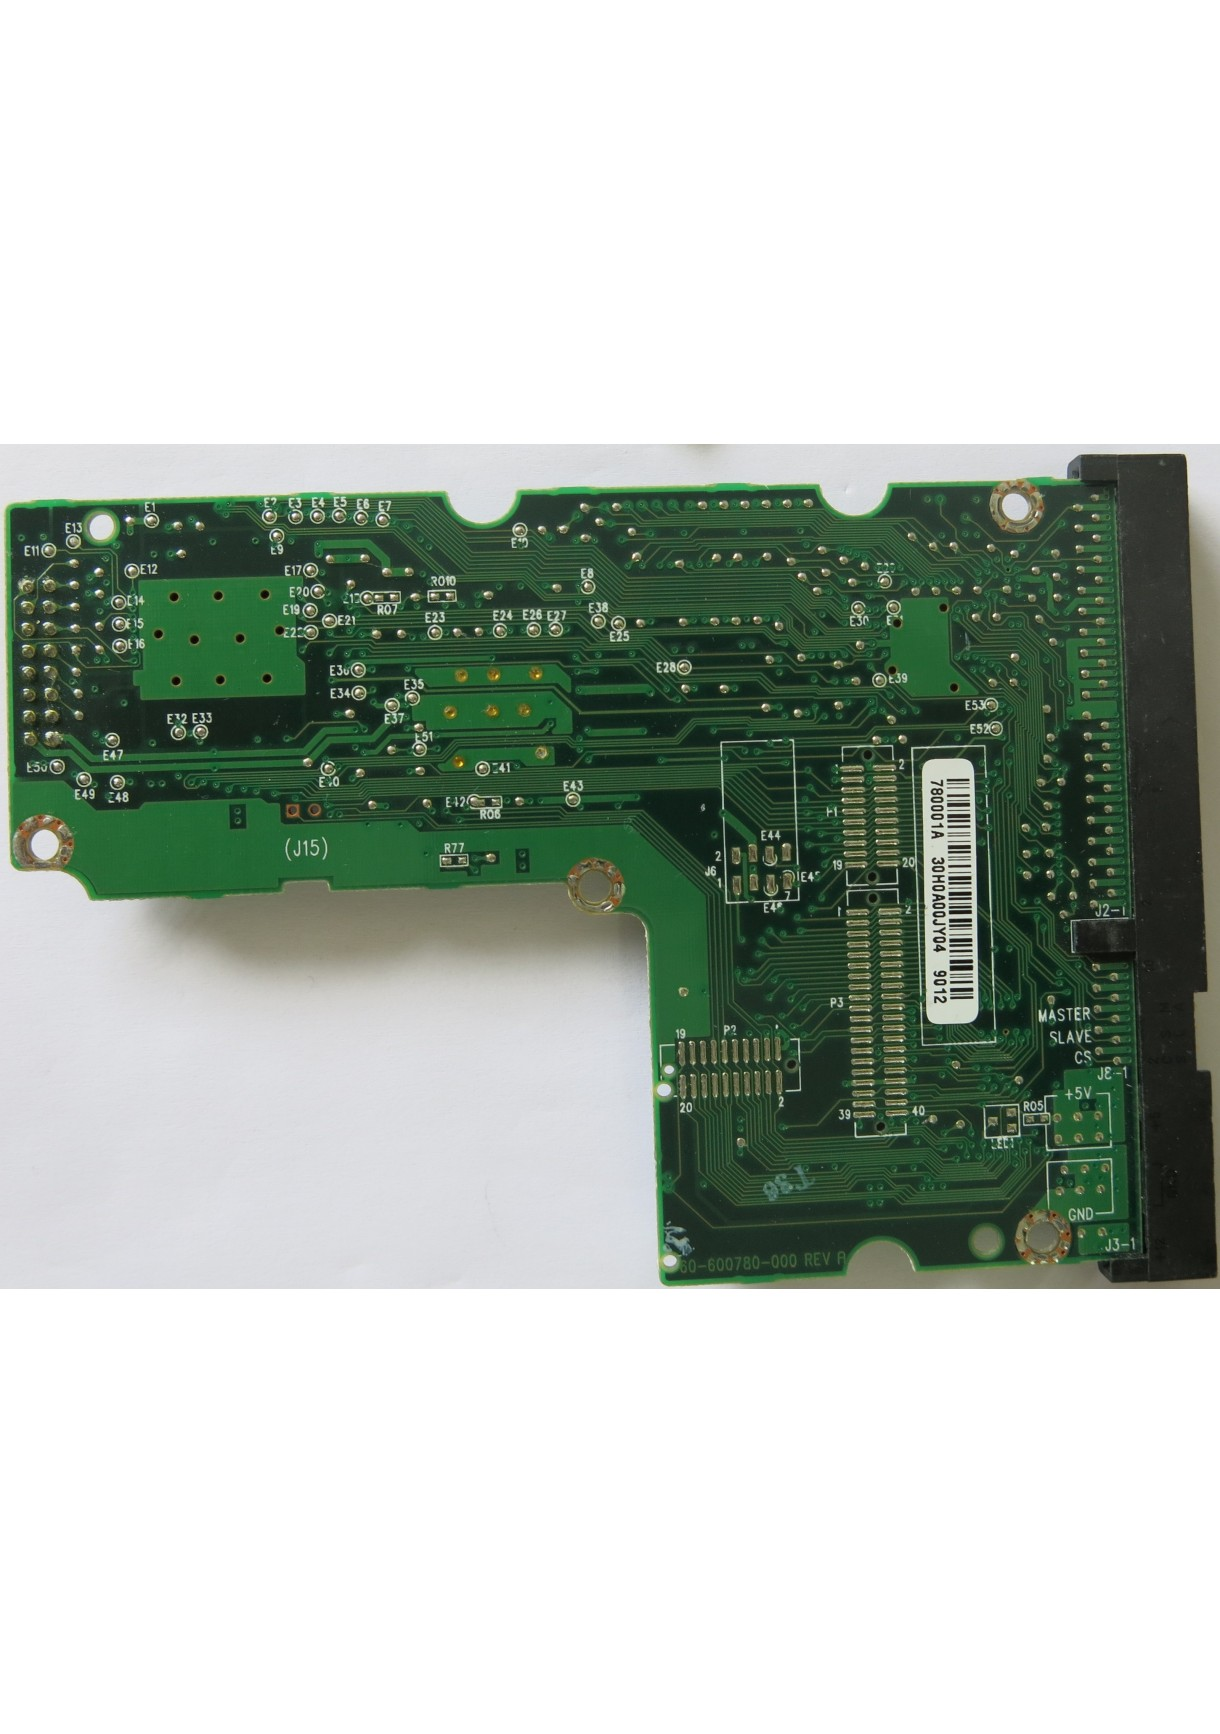 WESTERN DIGITAL 60-600788-000 REV A PCB